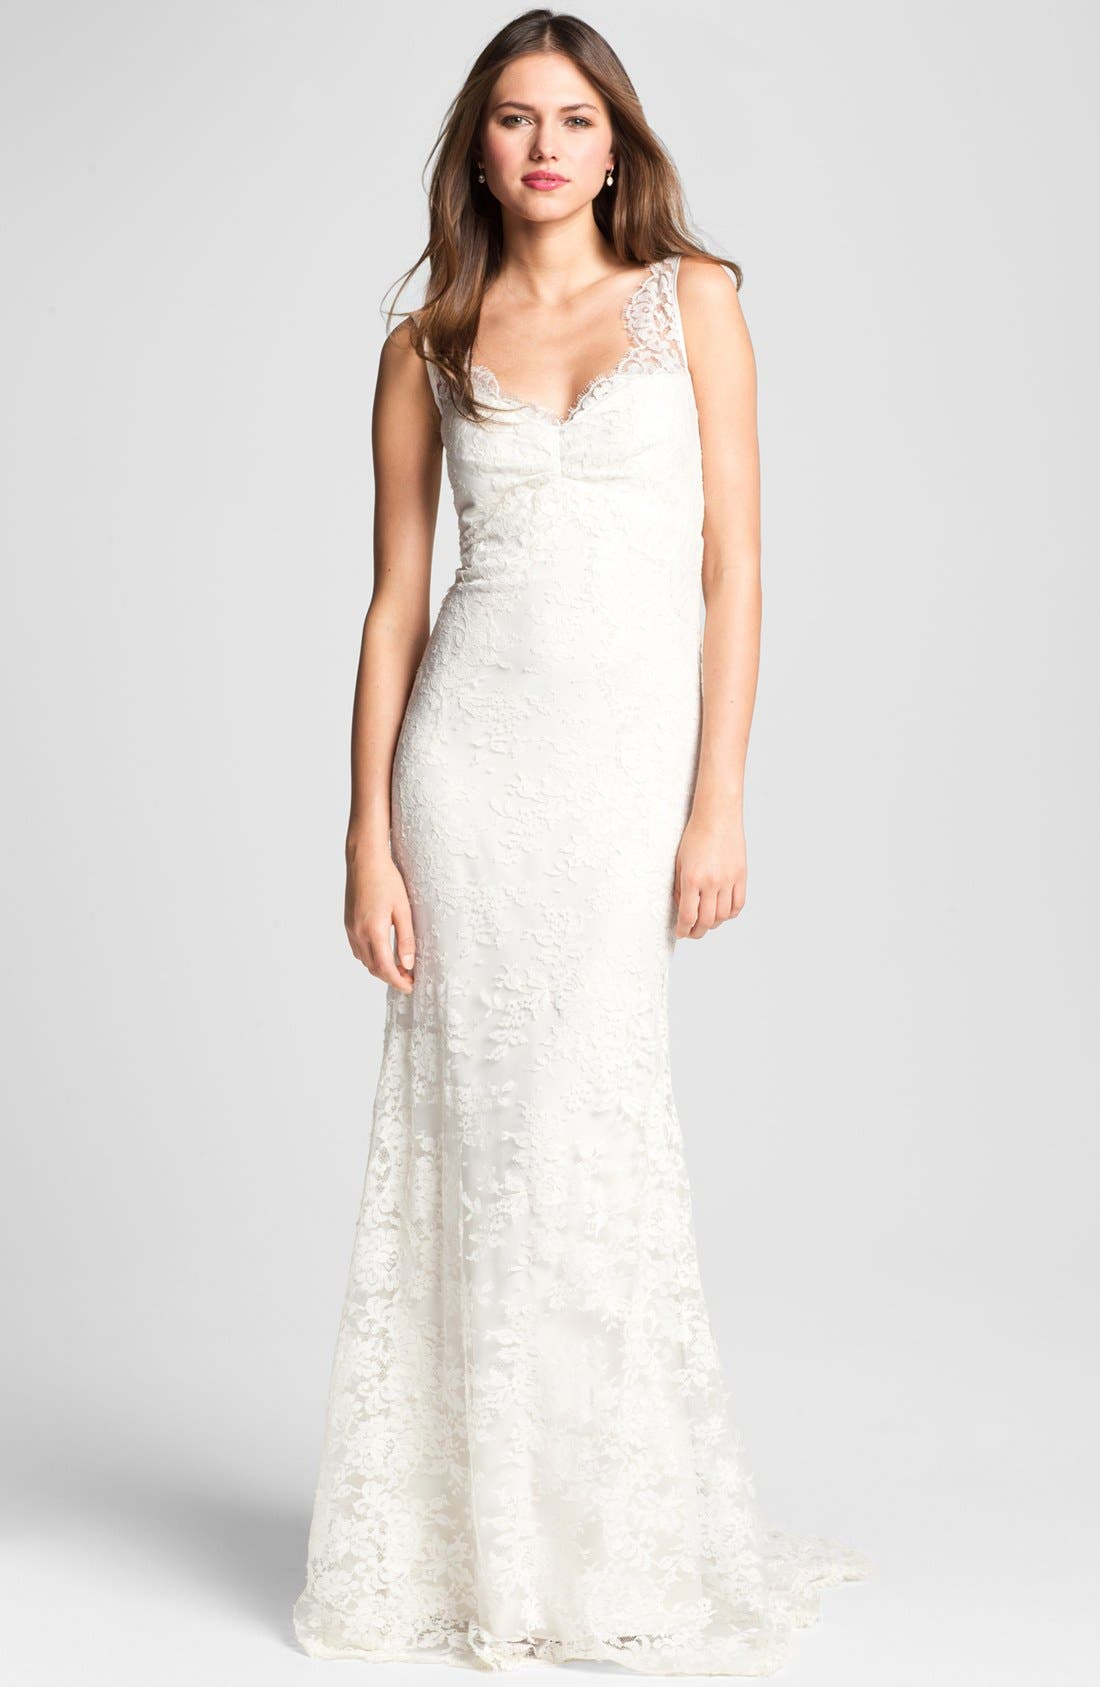 Main Image - Nicole Miller 'Brooke' Sleeveless Lace Trumpet Gown